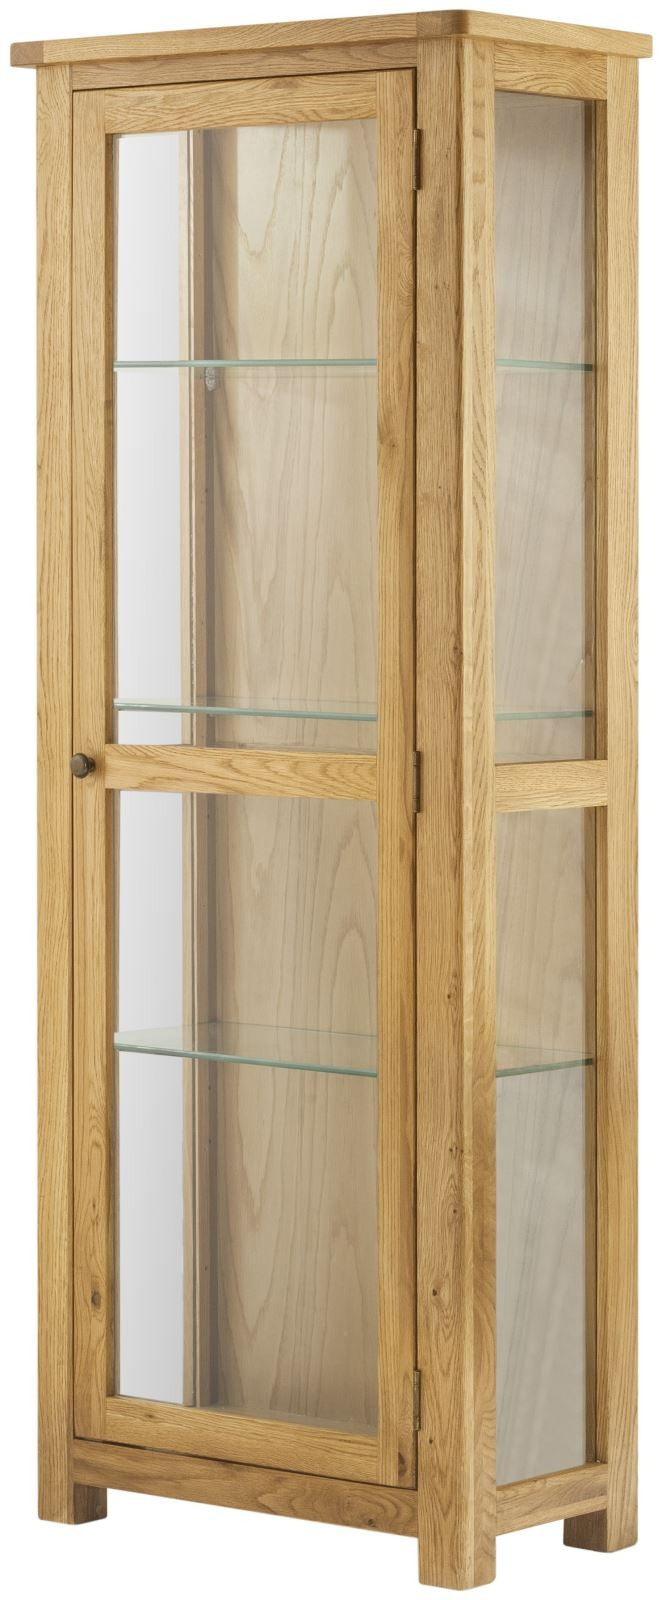 Cottage Display Cabinet Oak - Tylers Department Store